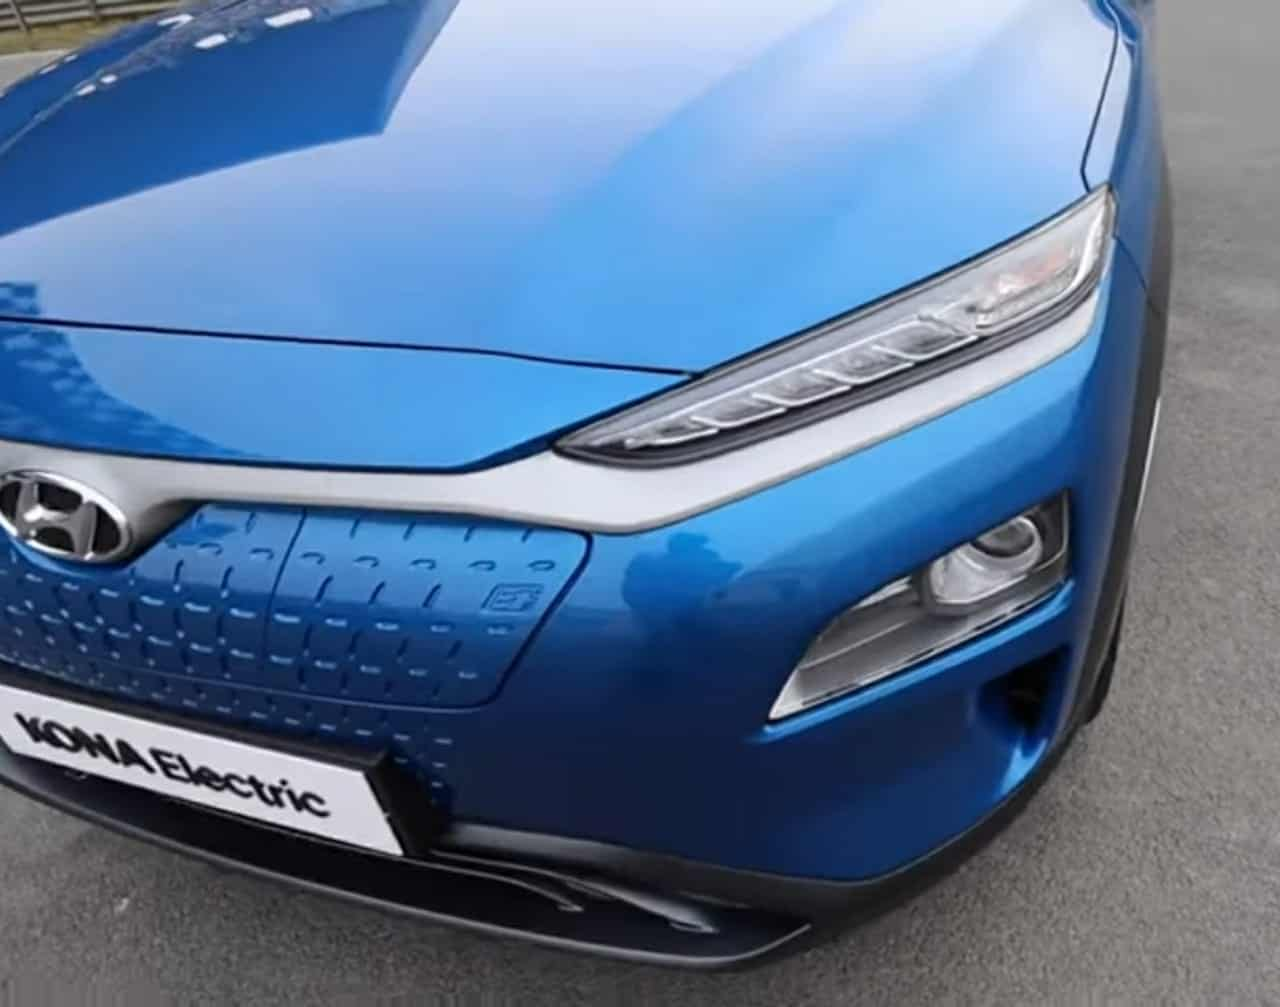 Hyundai Kona Electric headlight